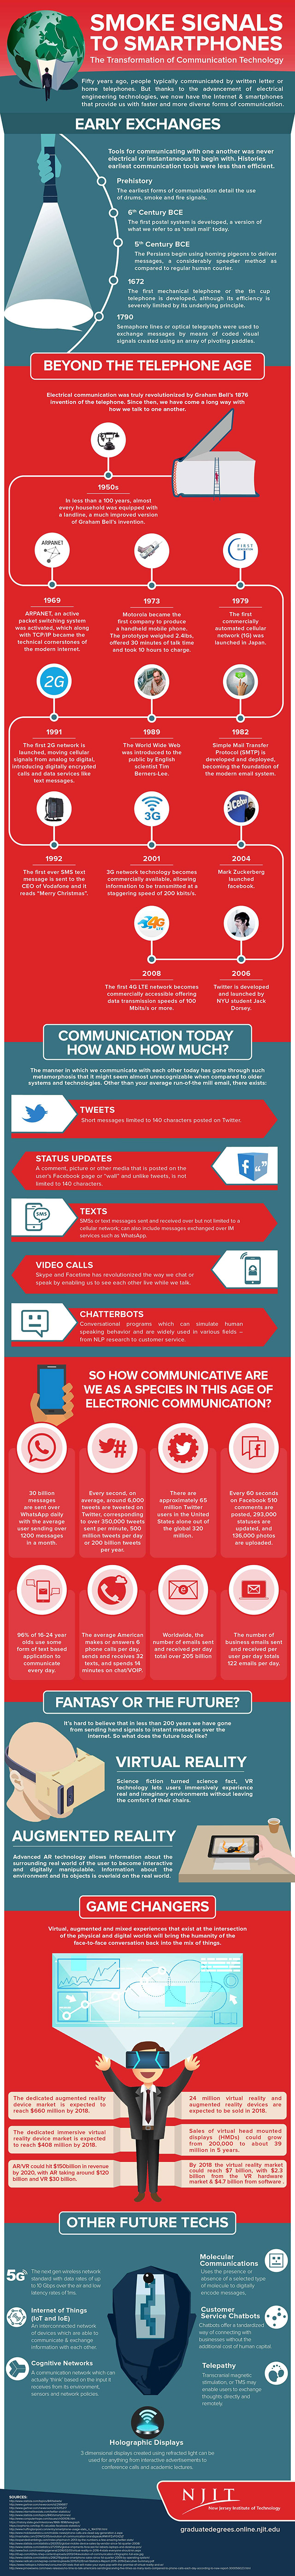 Communication technology history infographic from smoke signals to smartphones